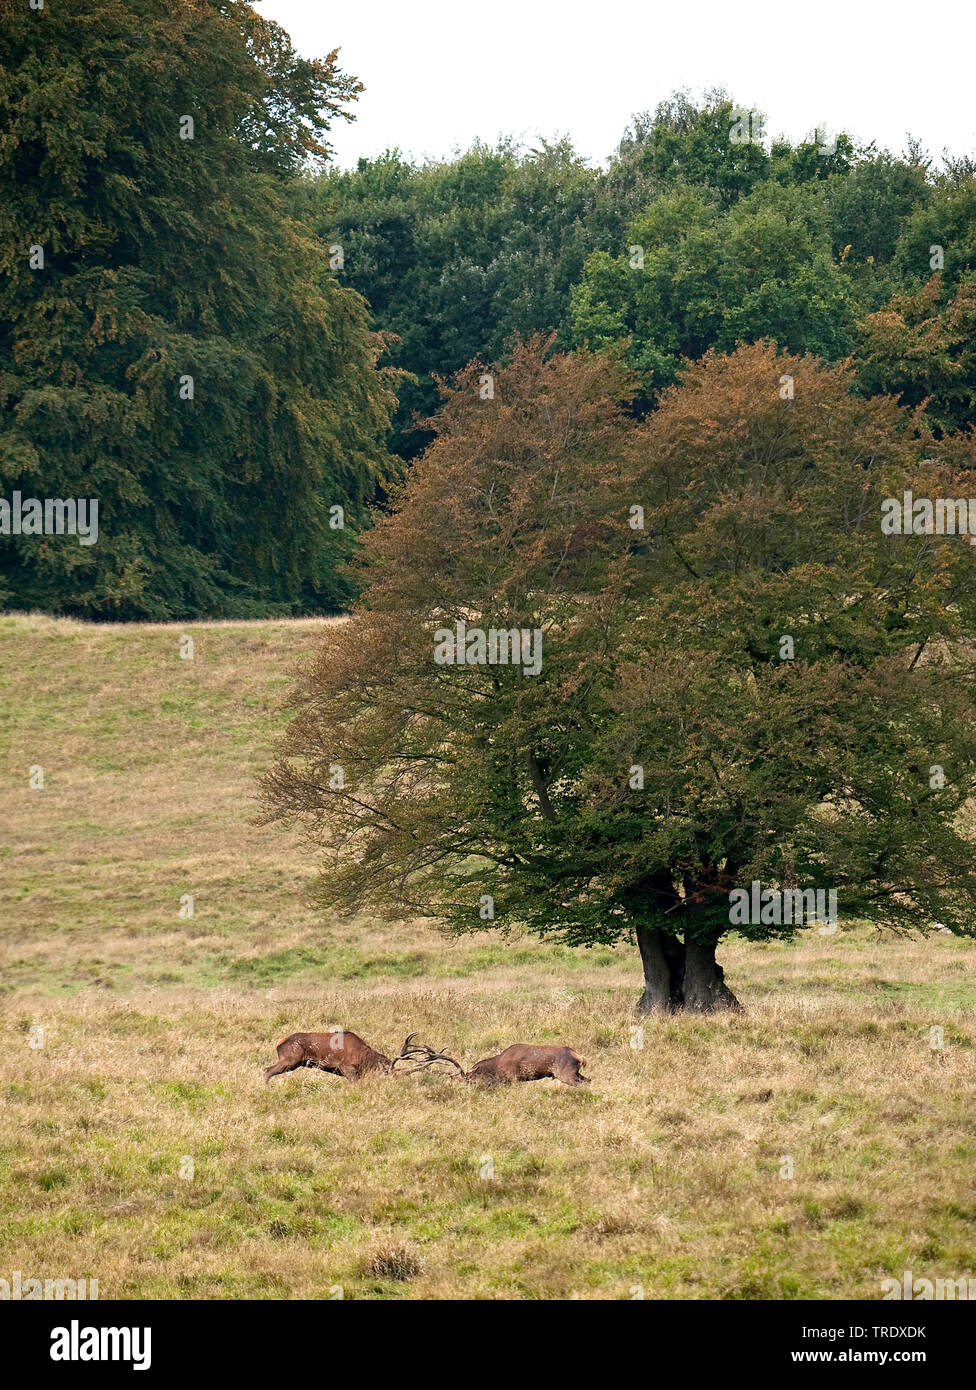 red deer (Cervus elaphus), two fighting stags, side view, Netherlands Stock Photo